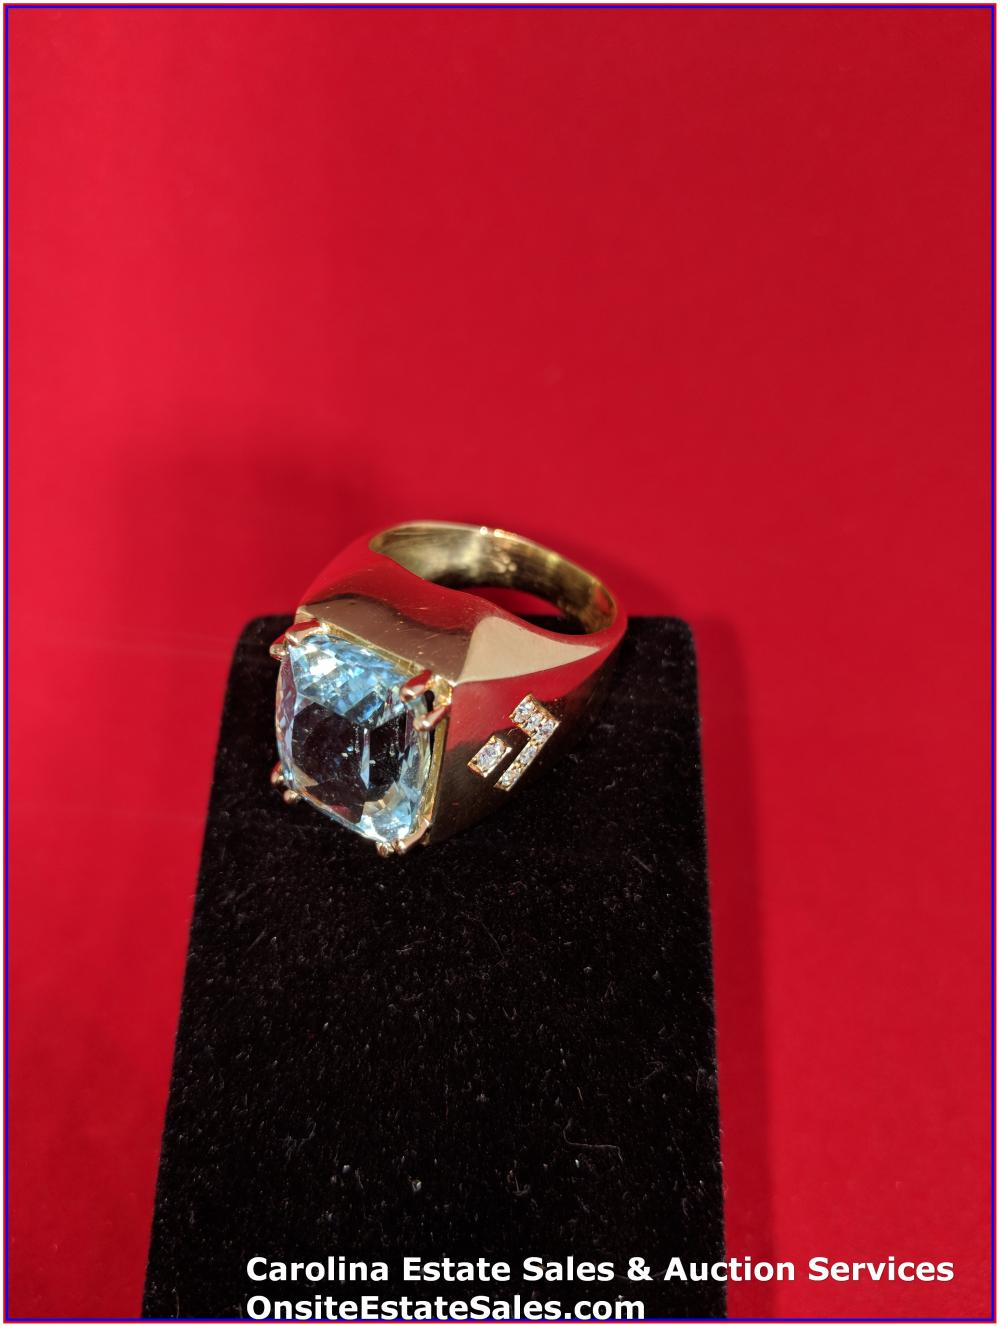 14K Gem Ring Gold 45 Grams Total Weight; 25 ct Blue Topaz Center Stone surround by 2 ct Diamonds